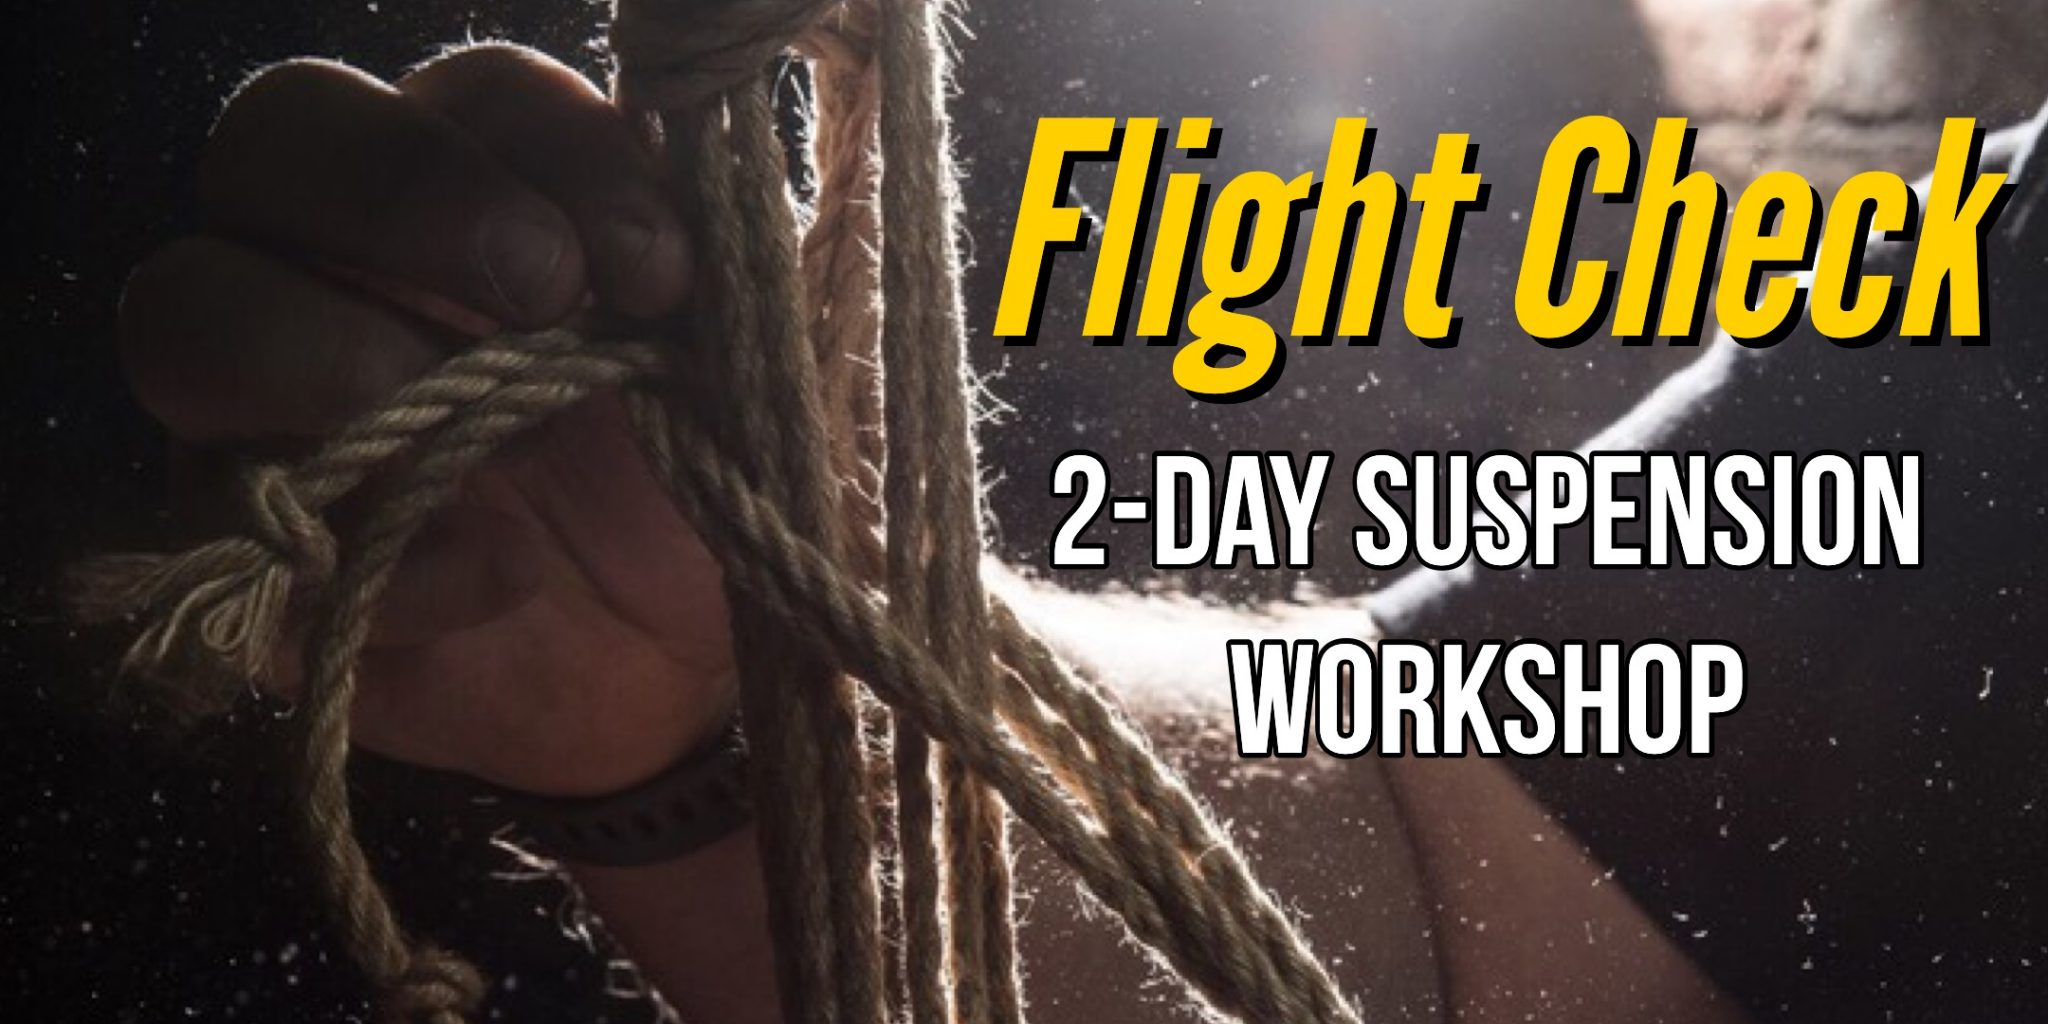 Flight Check: A Two-Day Suspension Workshop